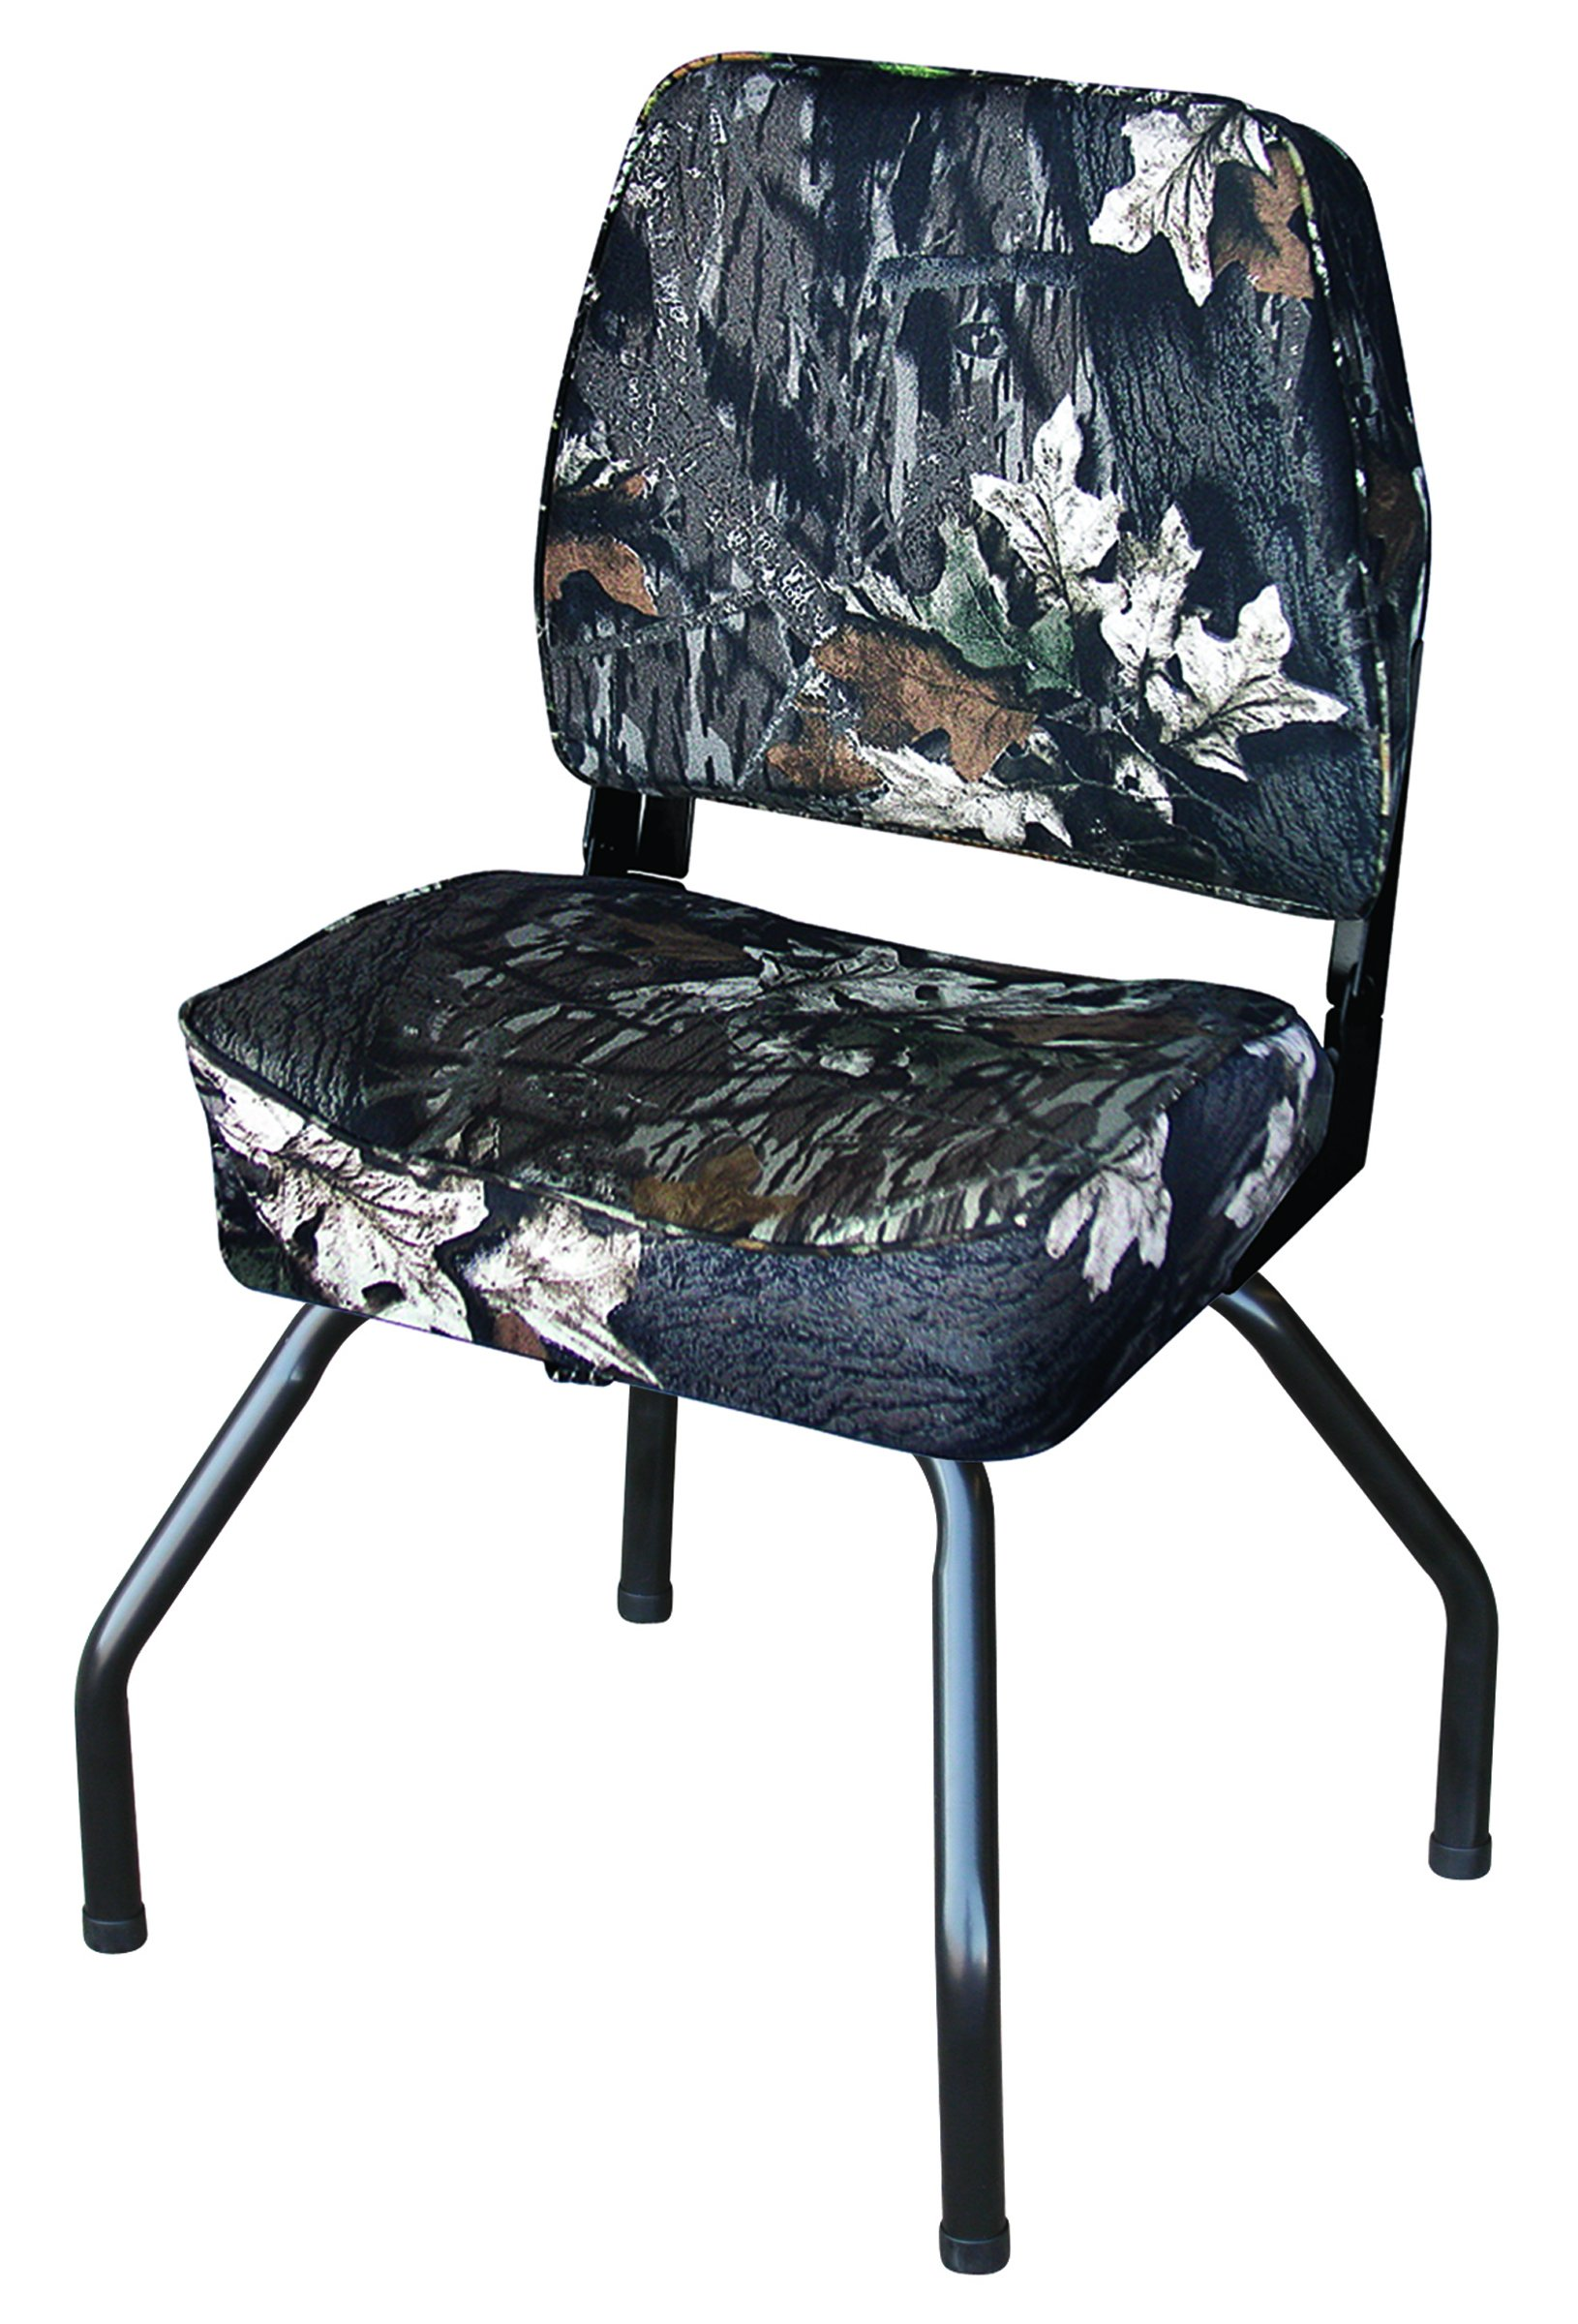 Wise Outdoors WD305-763 Hunting Blind Seat Combo with Seat Stand and Swivel, Mossy Oak Break-Up Camo